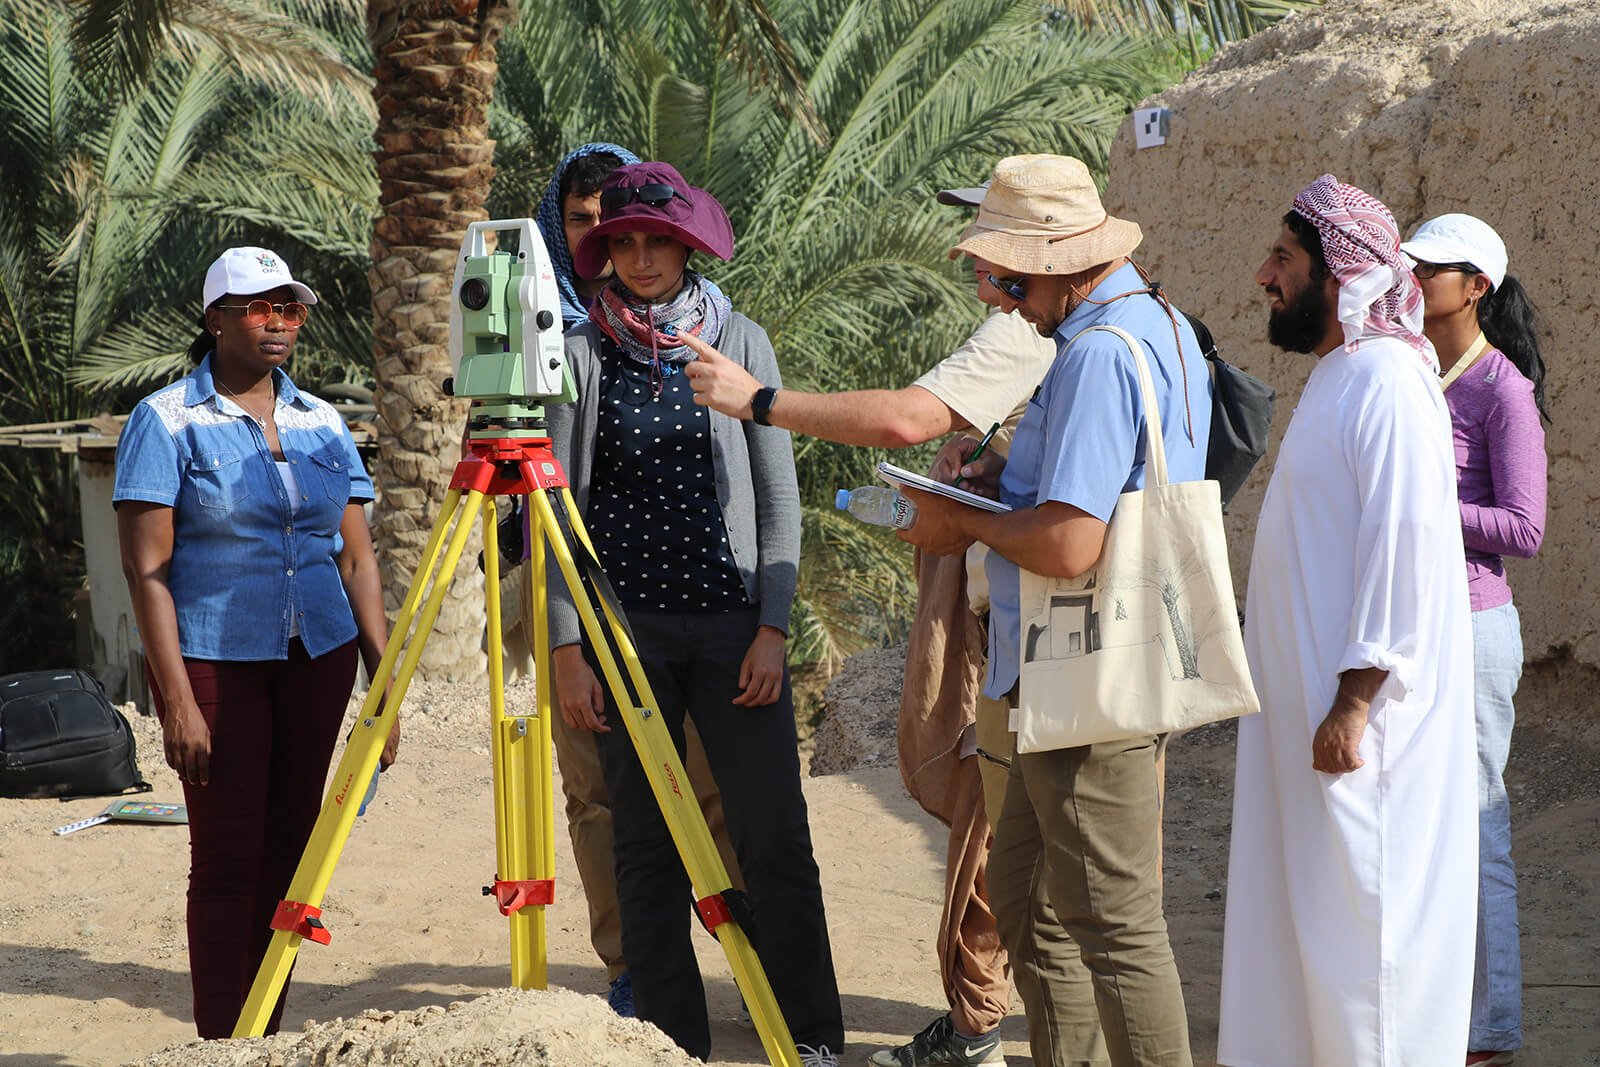 Gayathri Hegde, a young Indian woman, and other course participants stand near a theodolite mounted on a tripod.